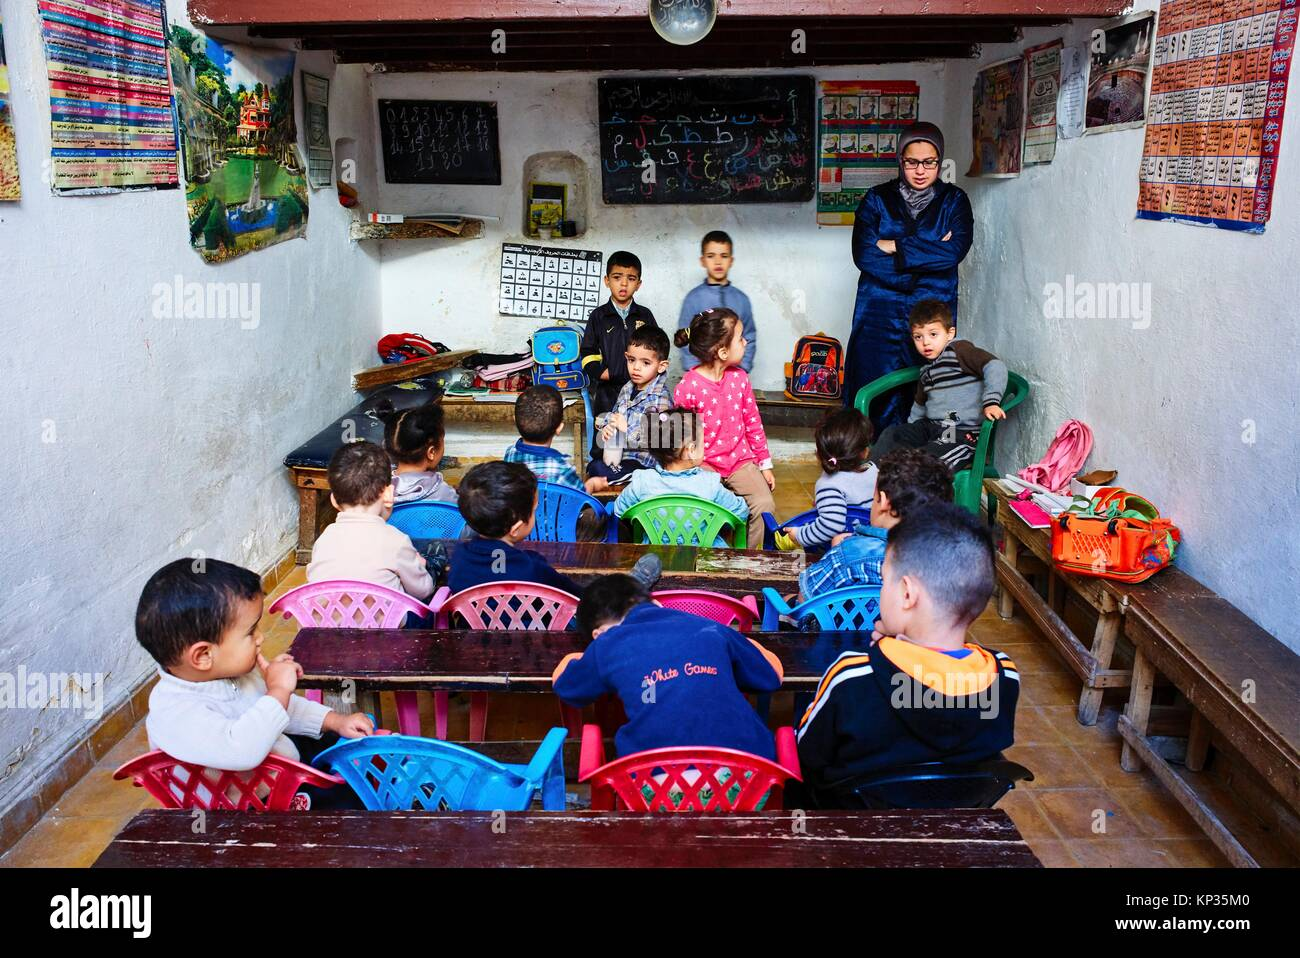 A kindergarten in the medina of Fez, Morocco - Stock Image